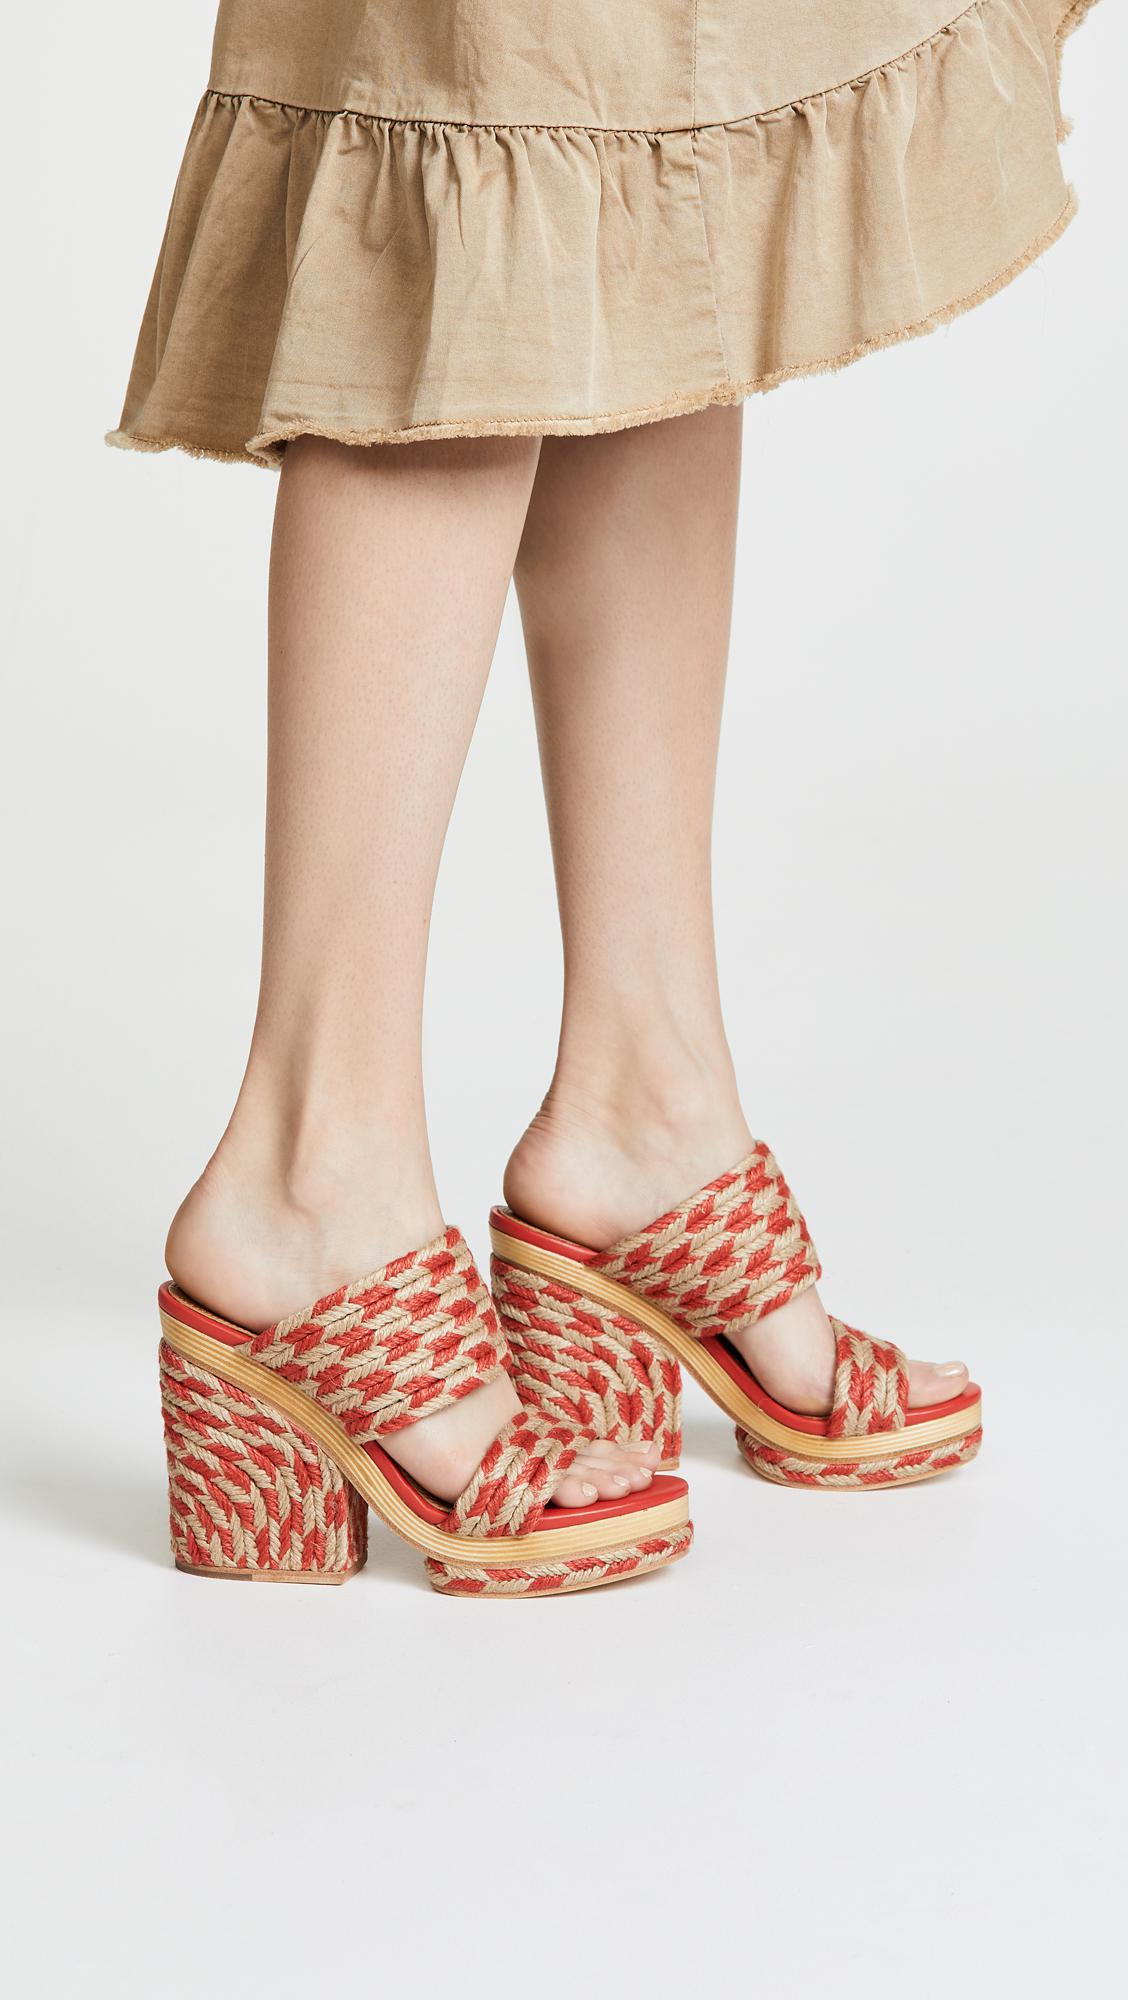 Tory Burch Lola sandals outlet footlocker pictures RWwDpda